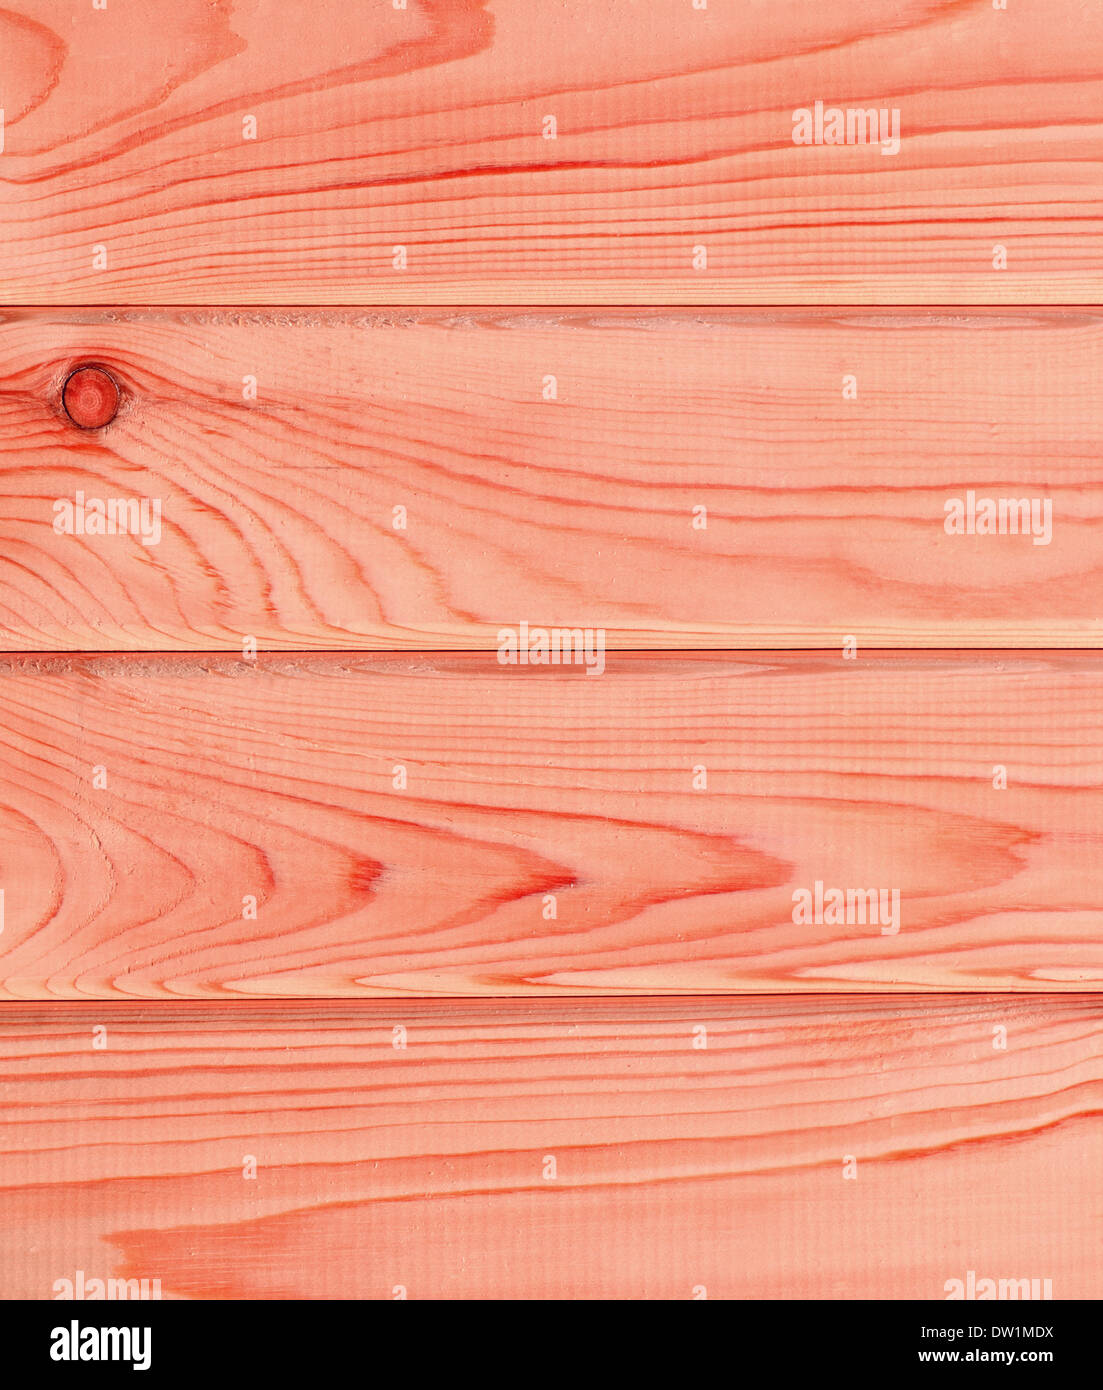 red bright wooden planks - Stock Image